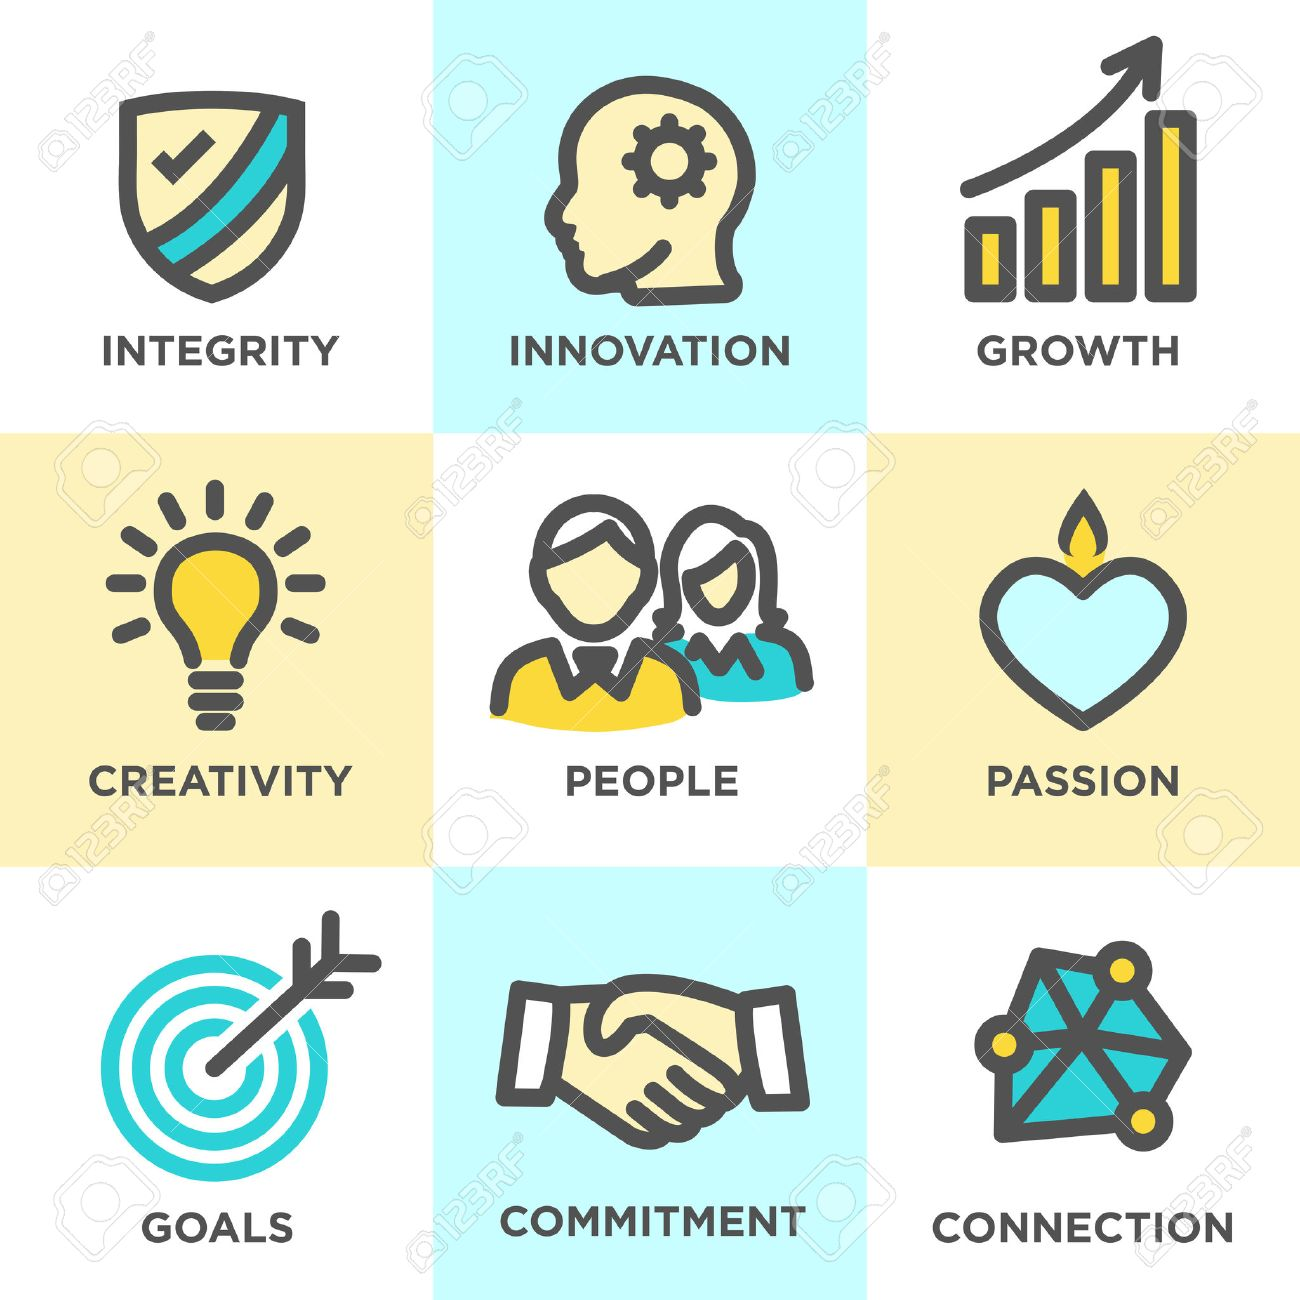 8117 honesty stock illustrations cliparts and royalty free company core values outline icons for websites or infographics biocorpaavc Image collections